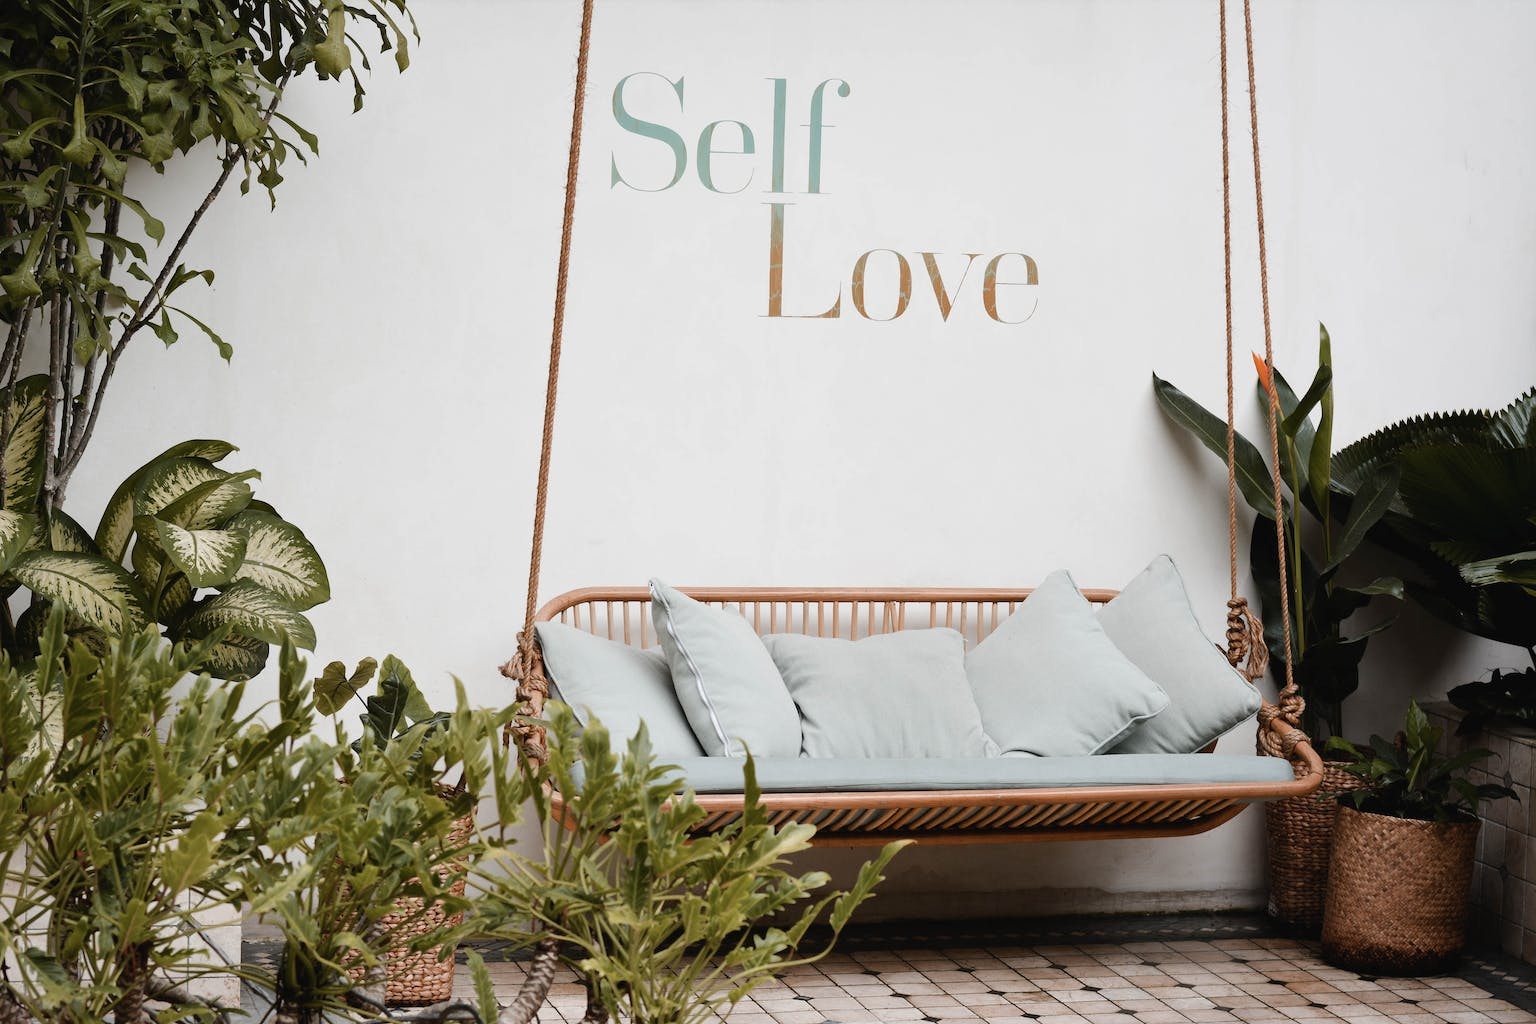 self-help books, seema love, self-love, seema.com, seema newsletter, seema culture, seema books, Brené Brown, Sonya Renee Taylor,Meera Lee Patel , content pixie, unsplash